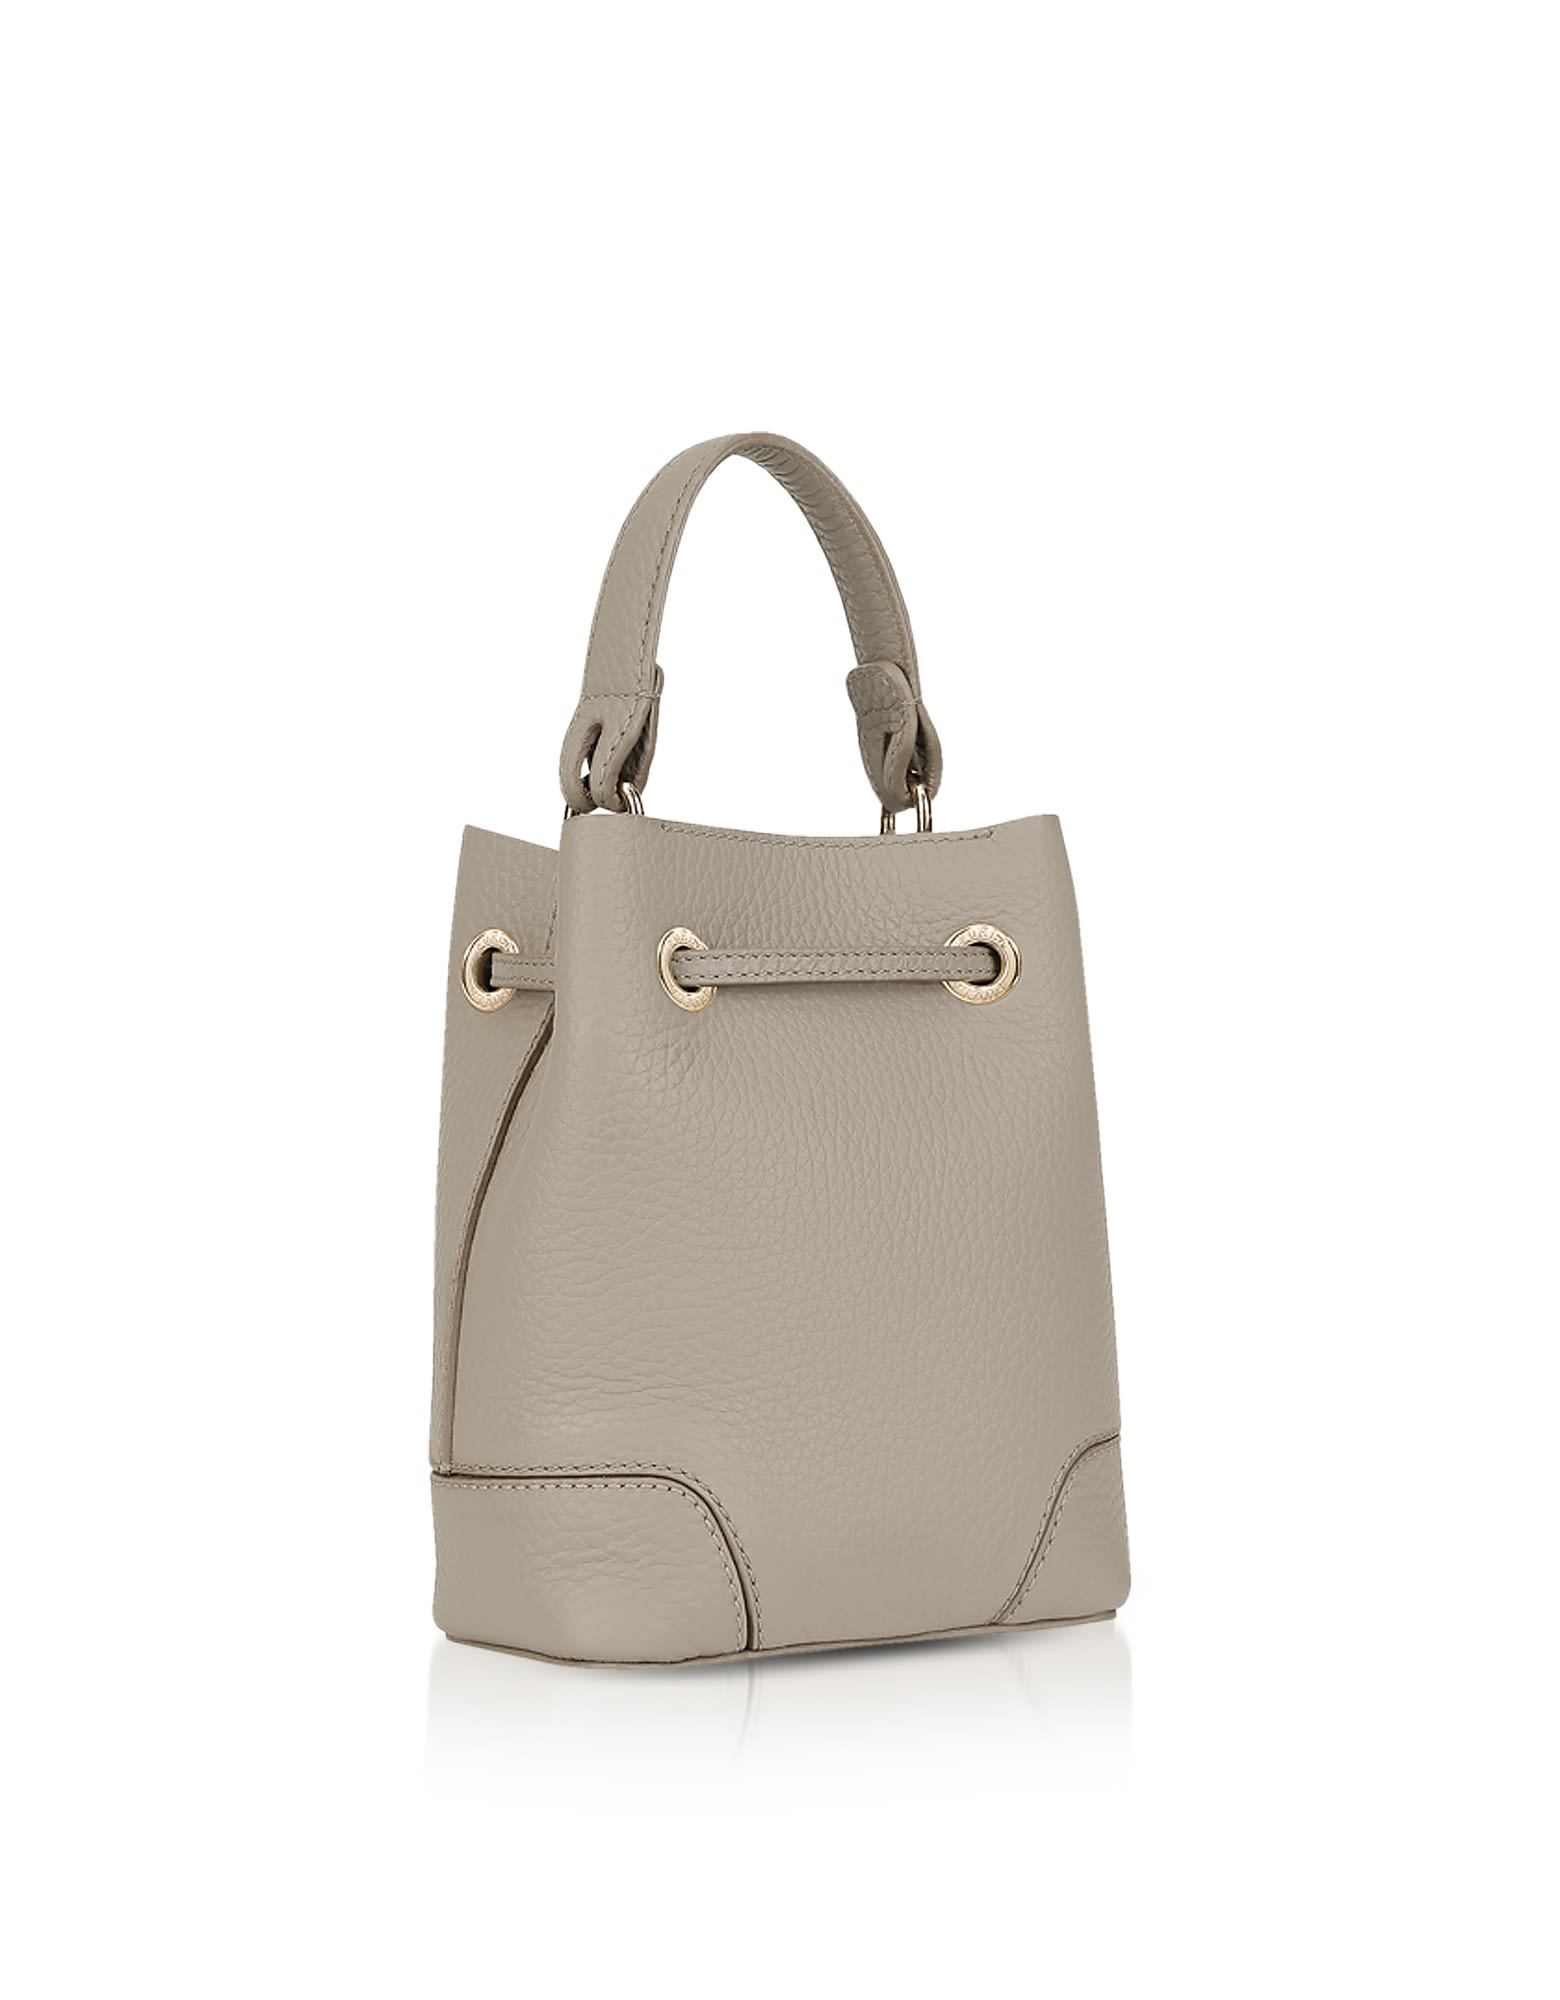 Italist Best Price In The Market For Furla Stacy Mini Bag Drawstring Bucket Sand